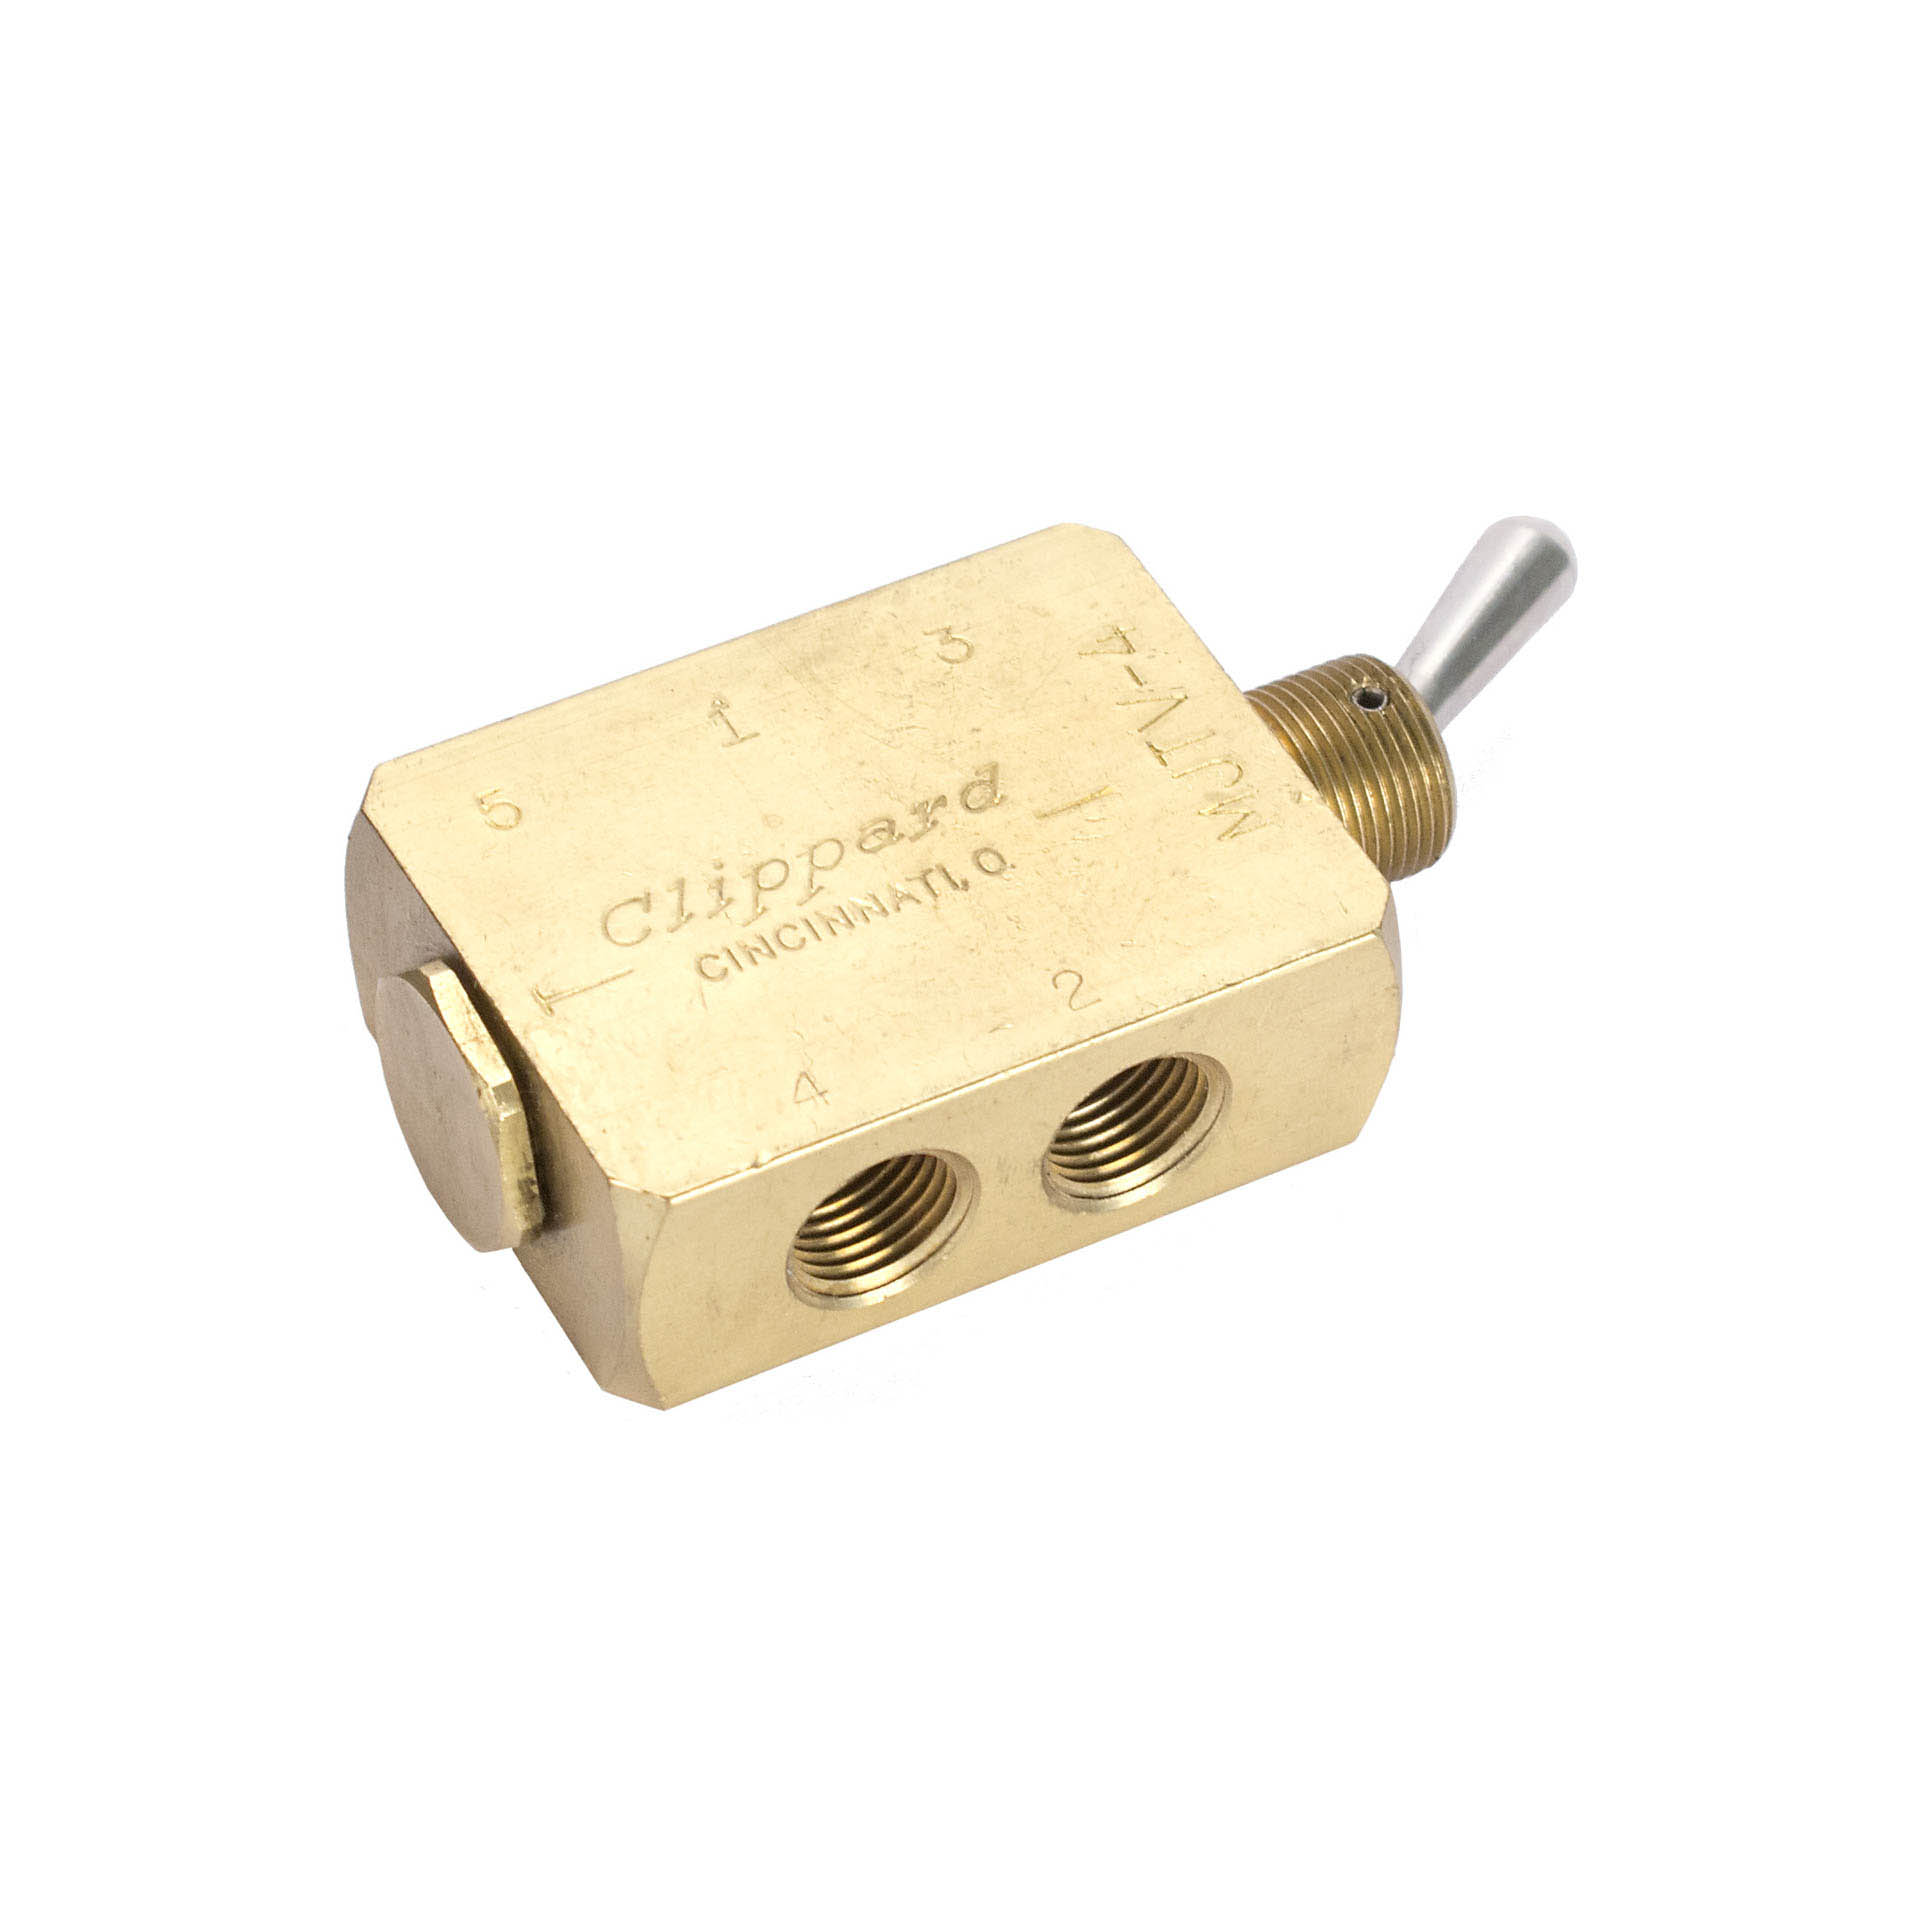 Push Pull Cables >> Buy 3-Way Toggle Switch online at Access Truck Parts